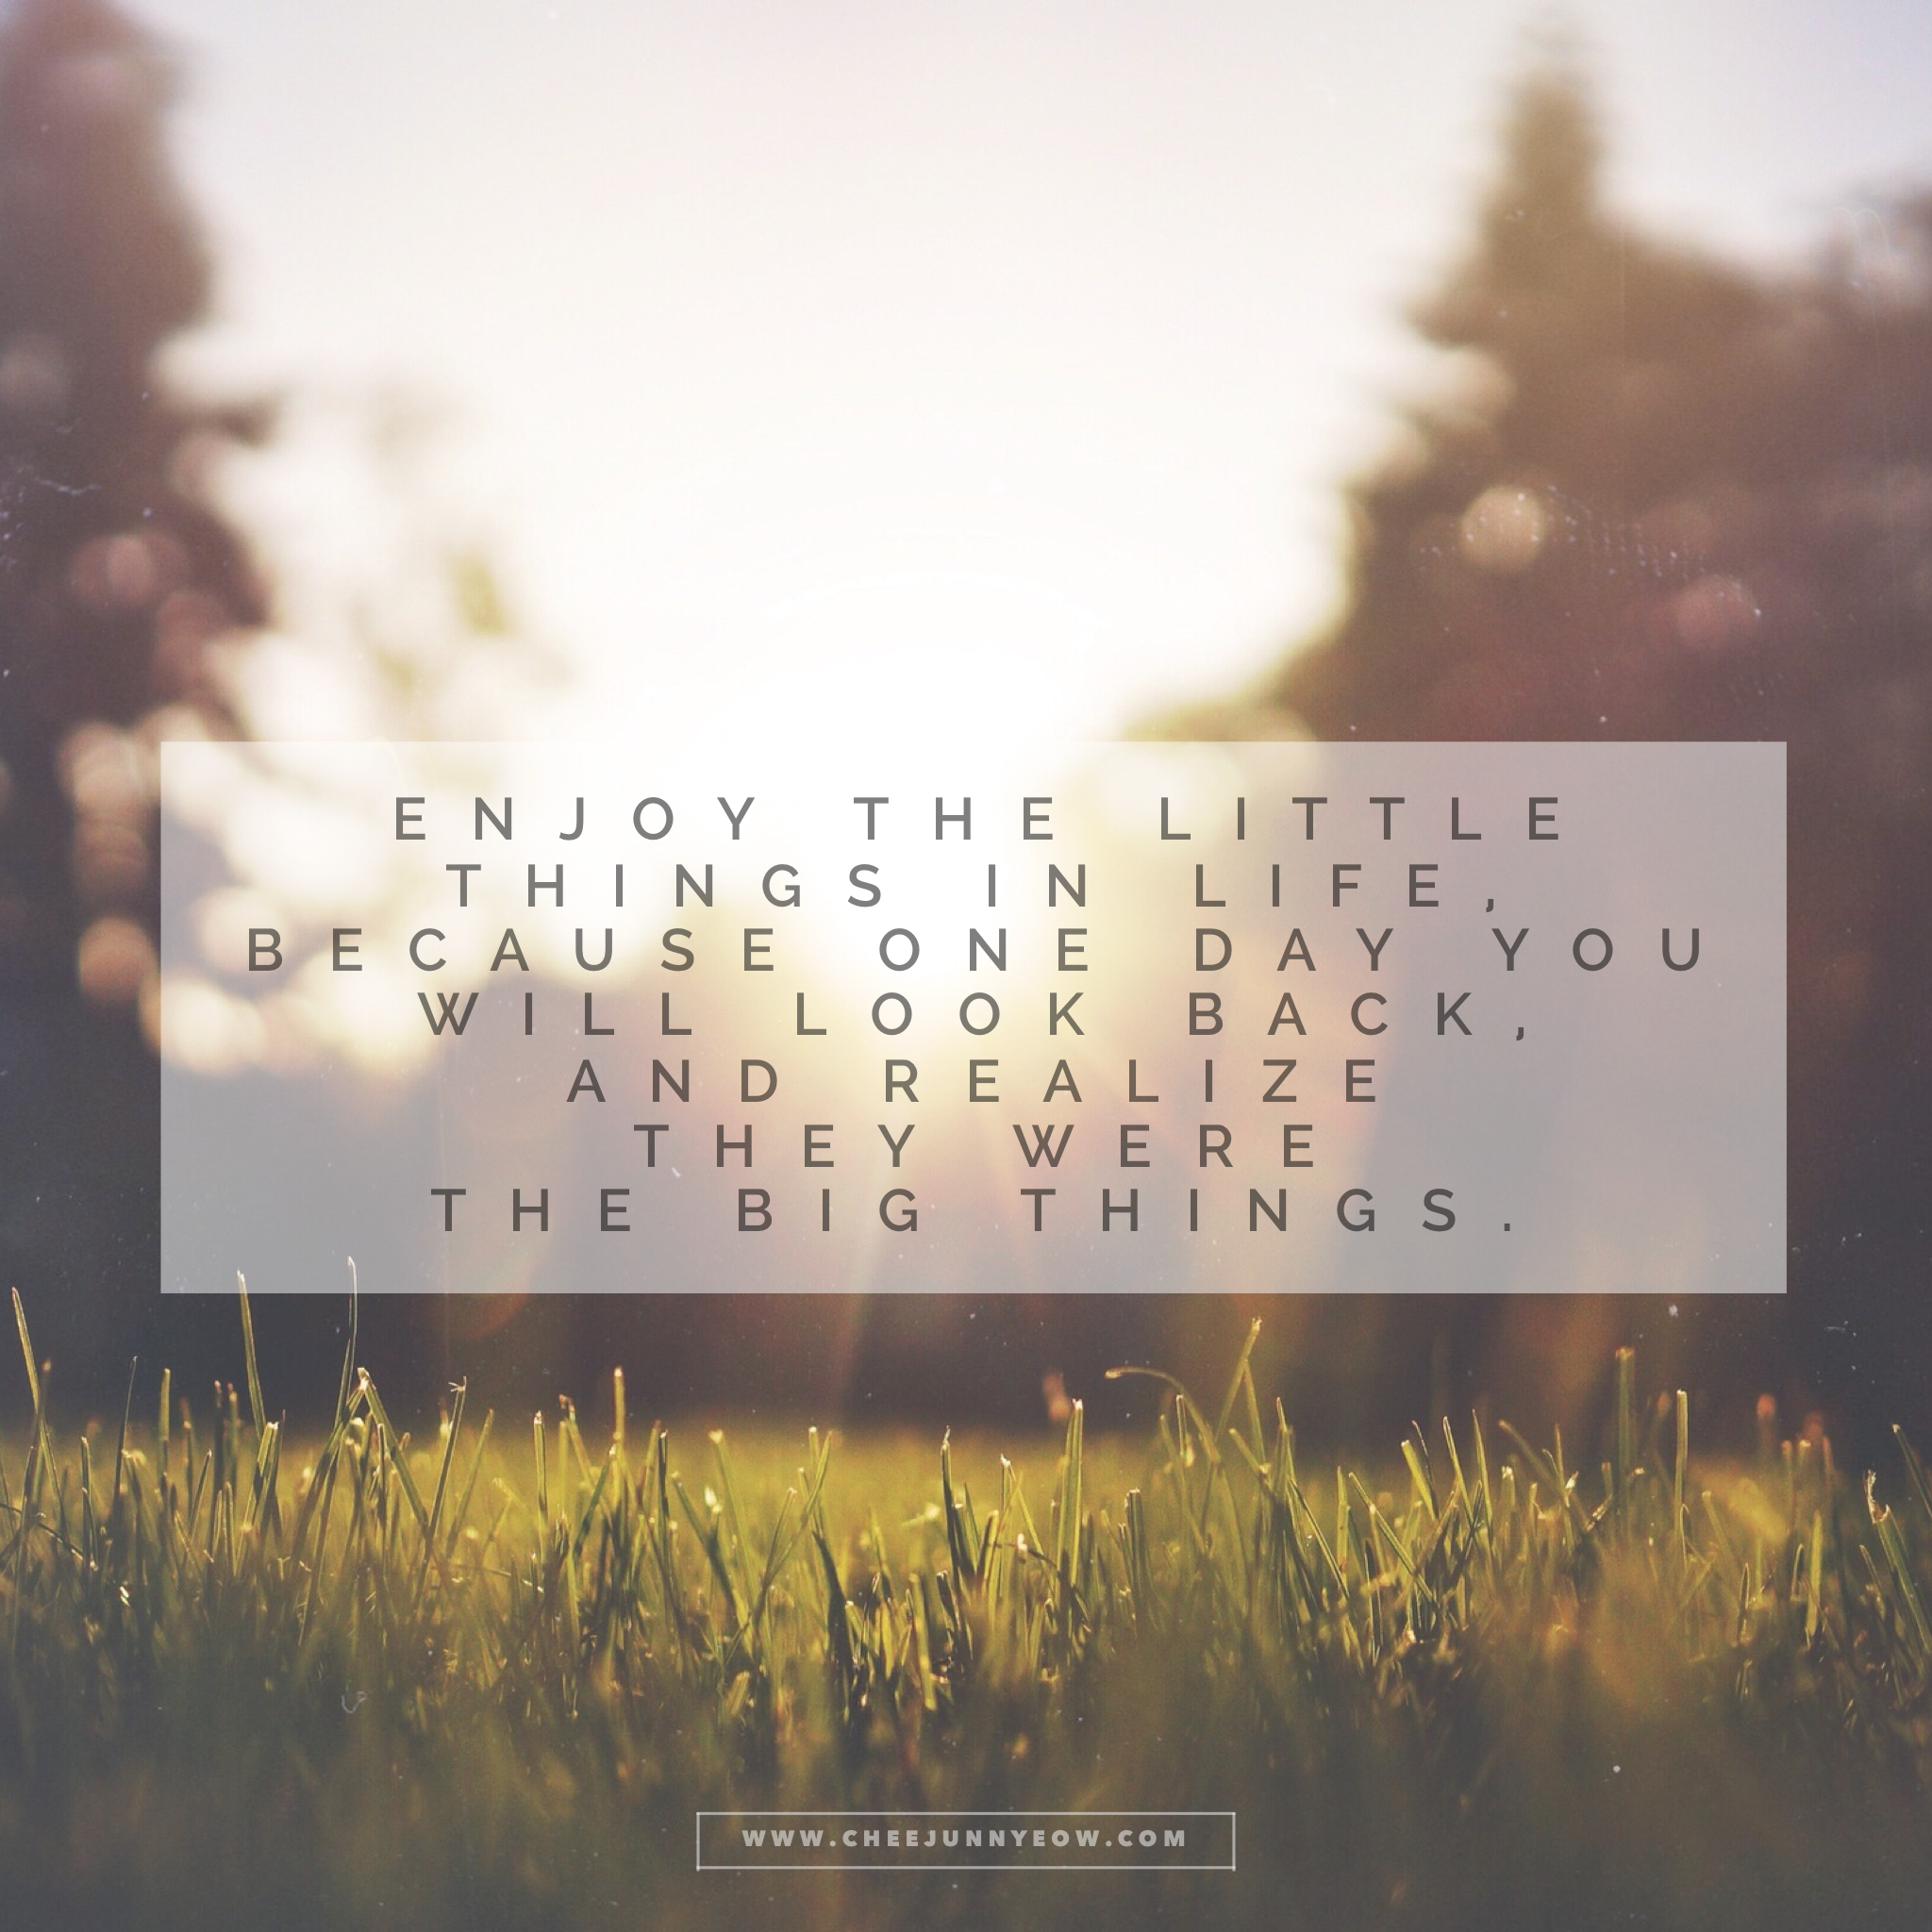 enjoy the little things in life because one day you will look back and realize they were the big things